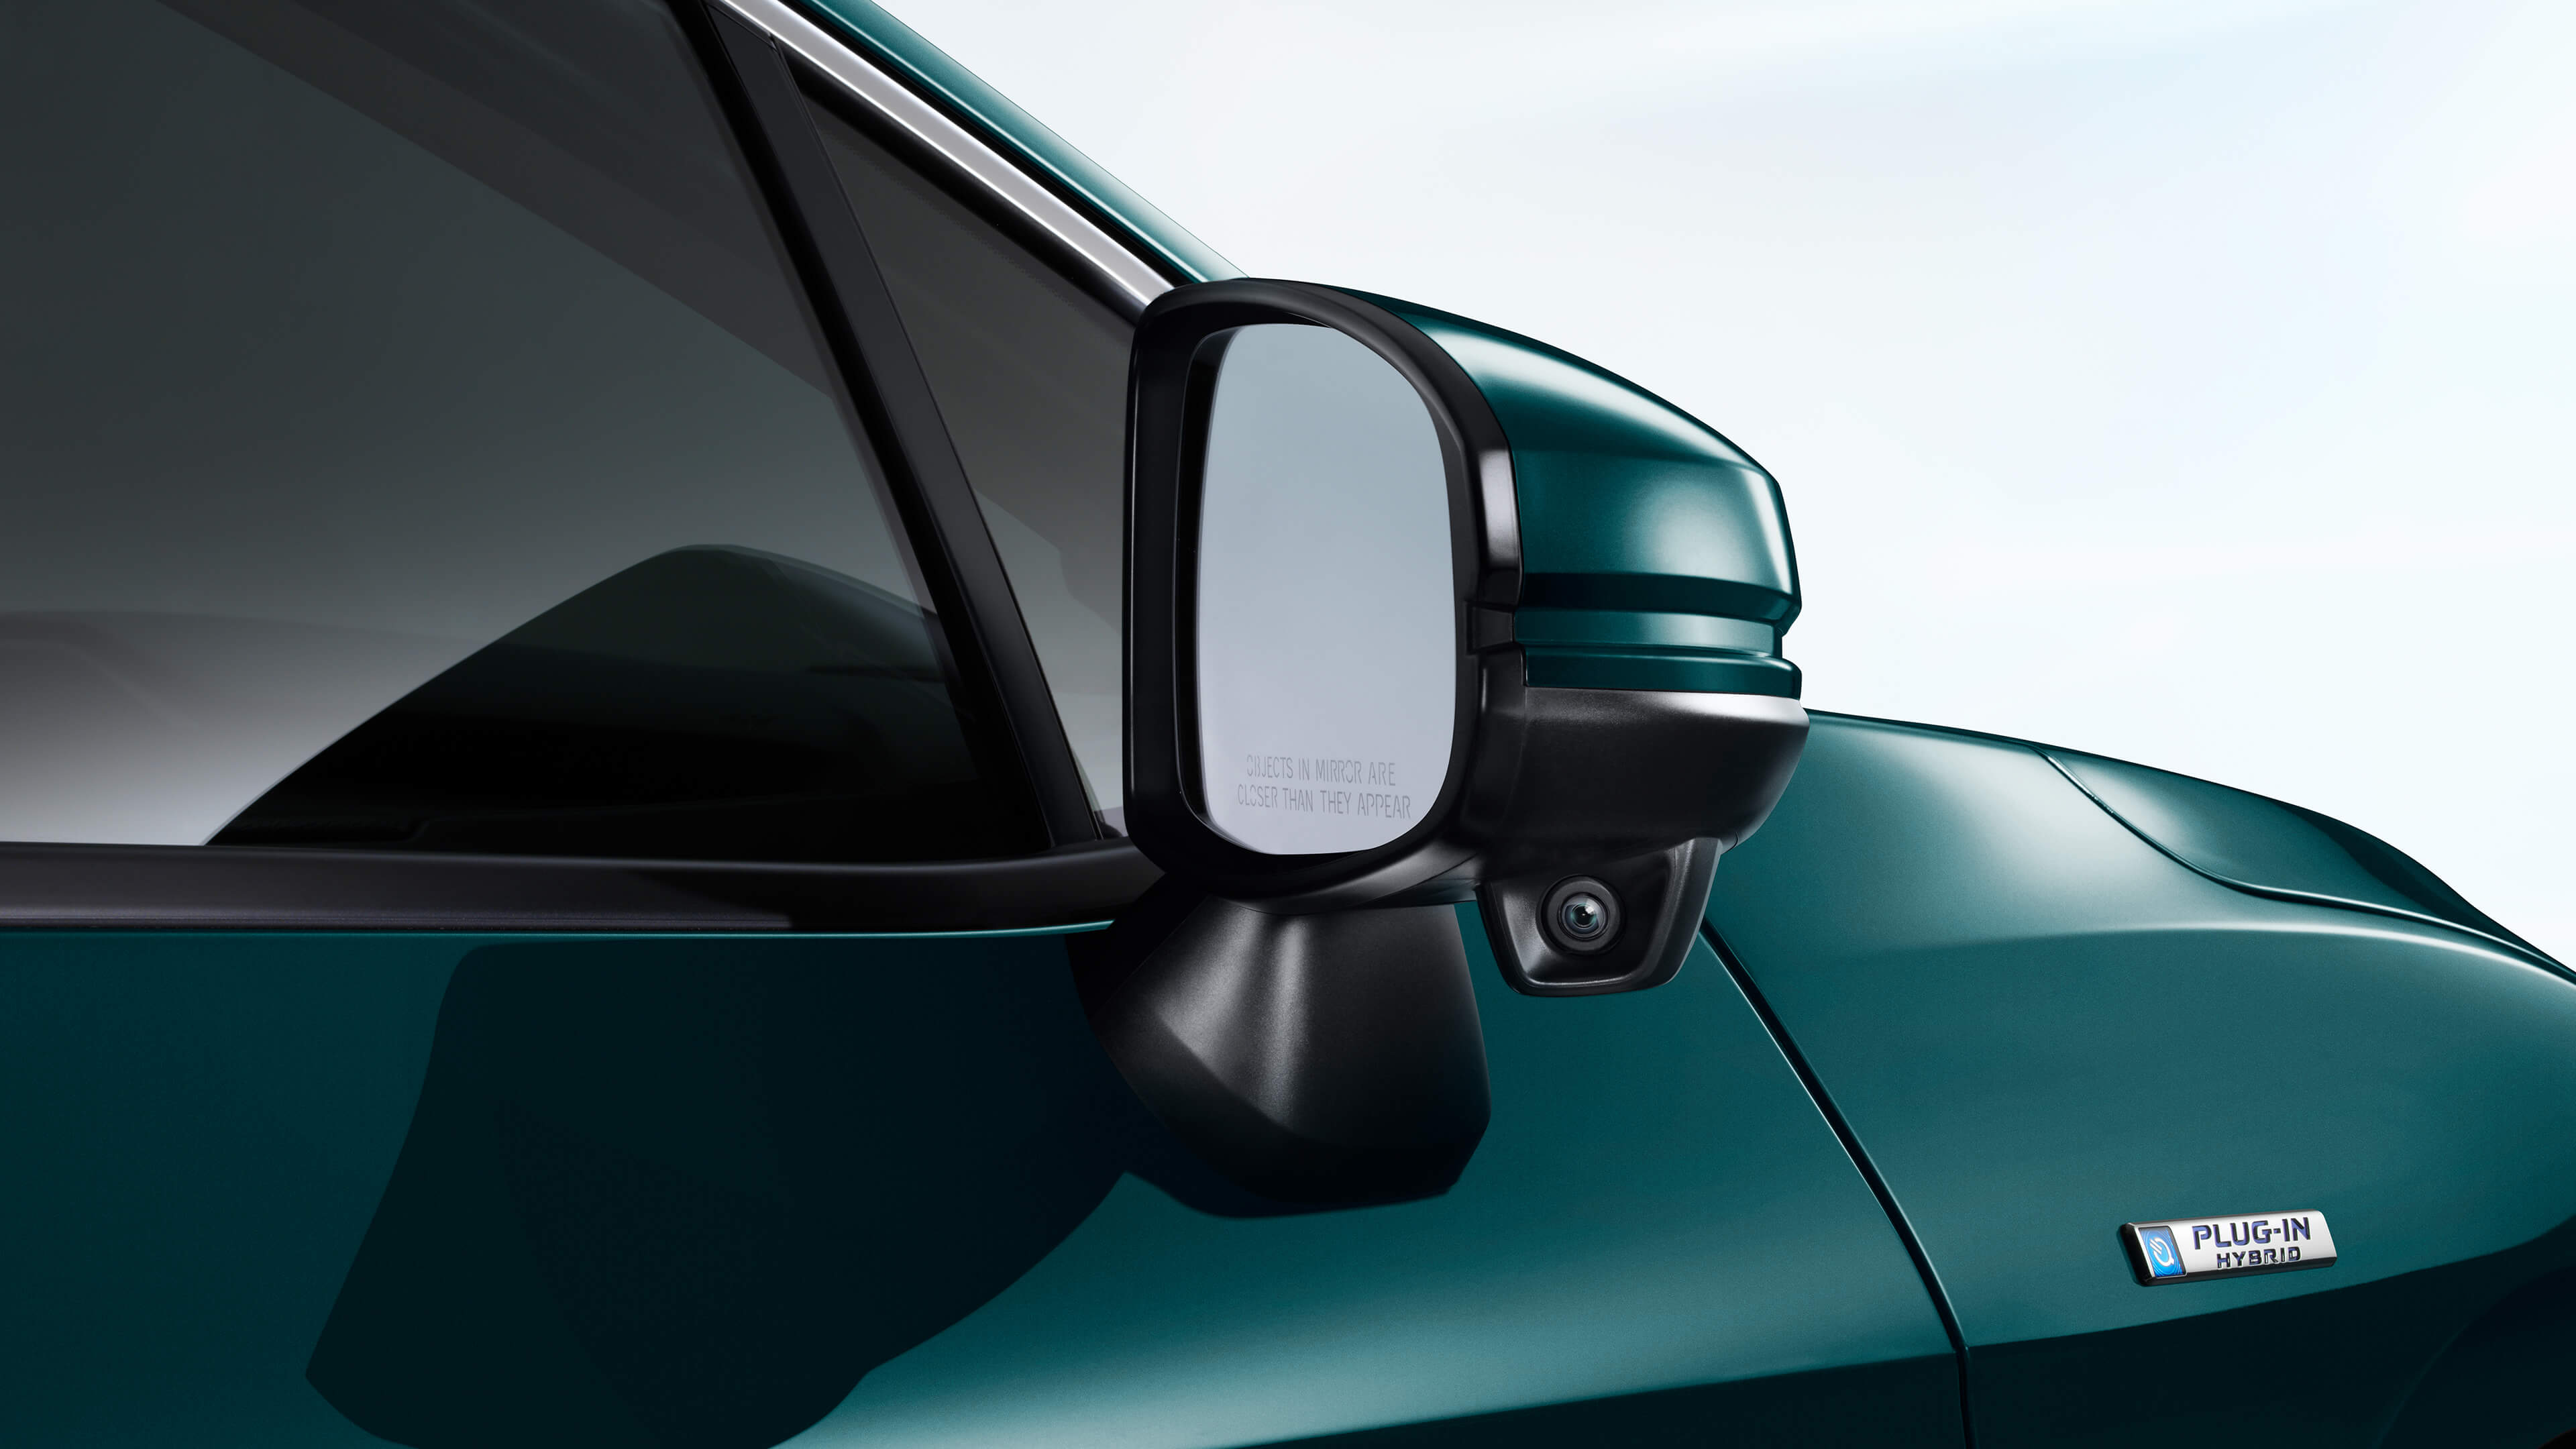 2020 Honda Clarity side mirror